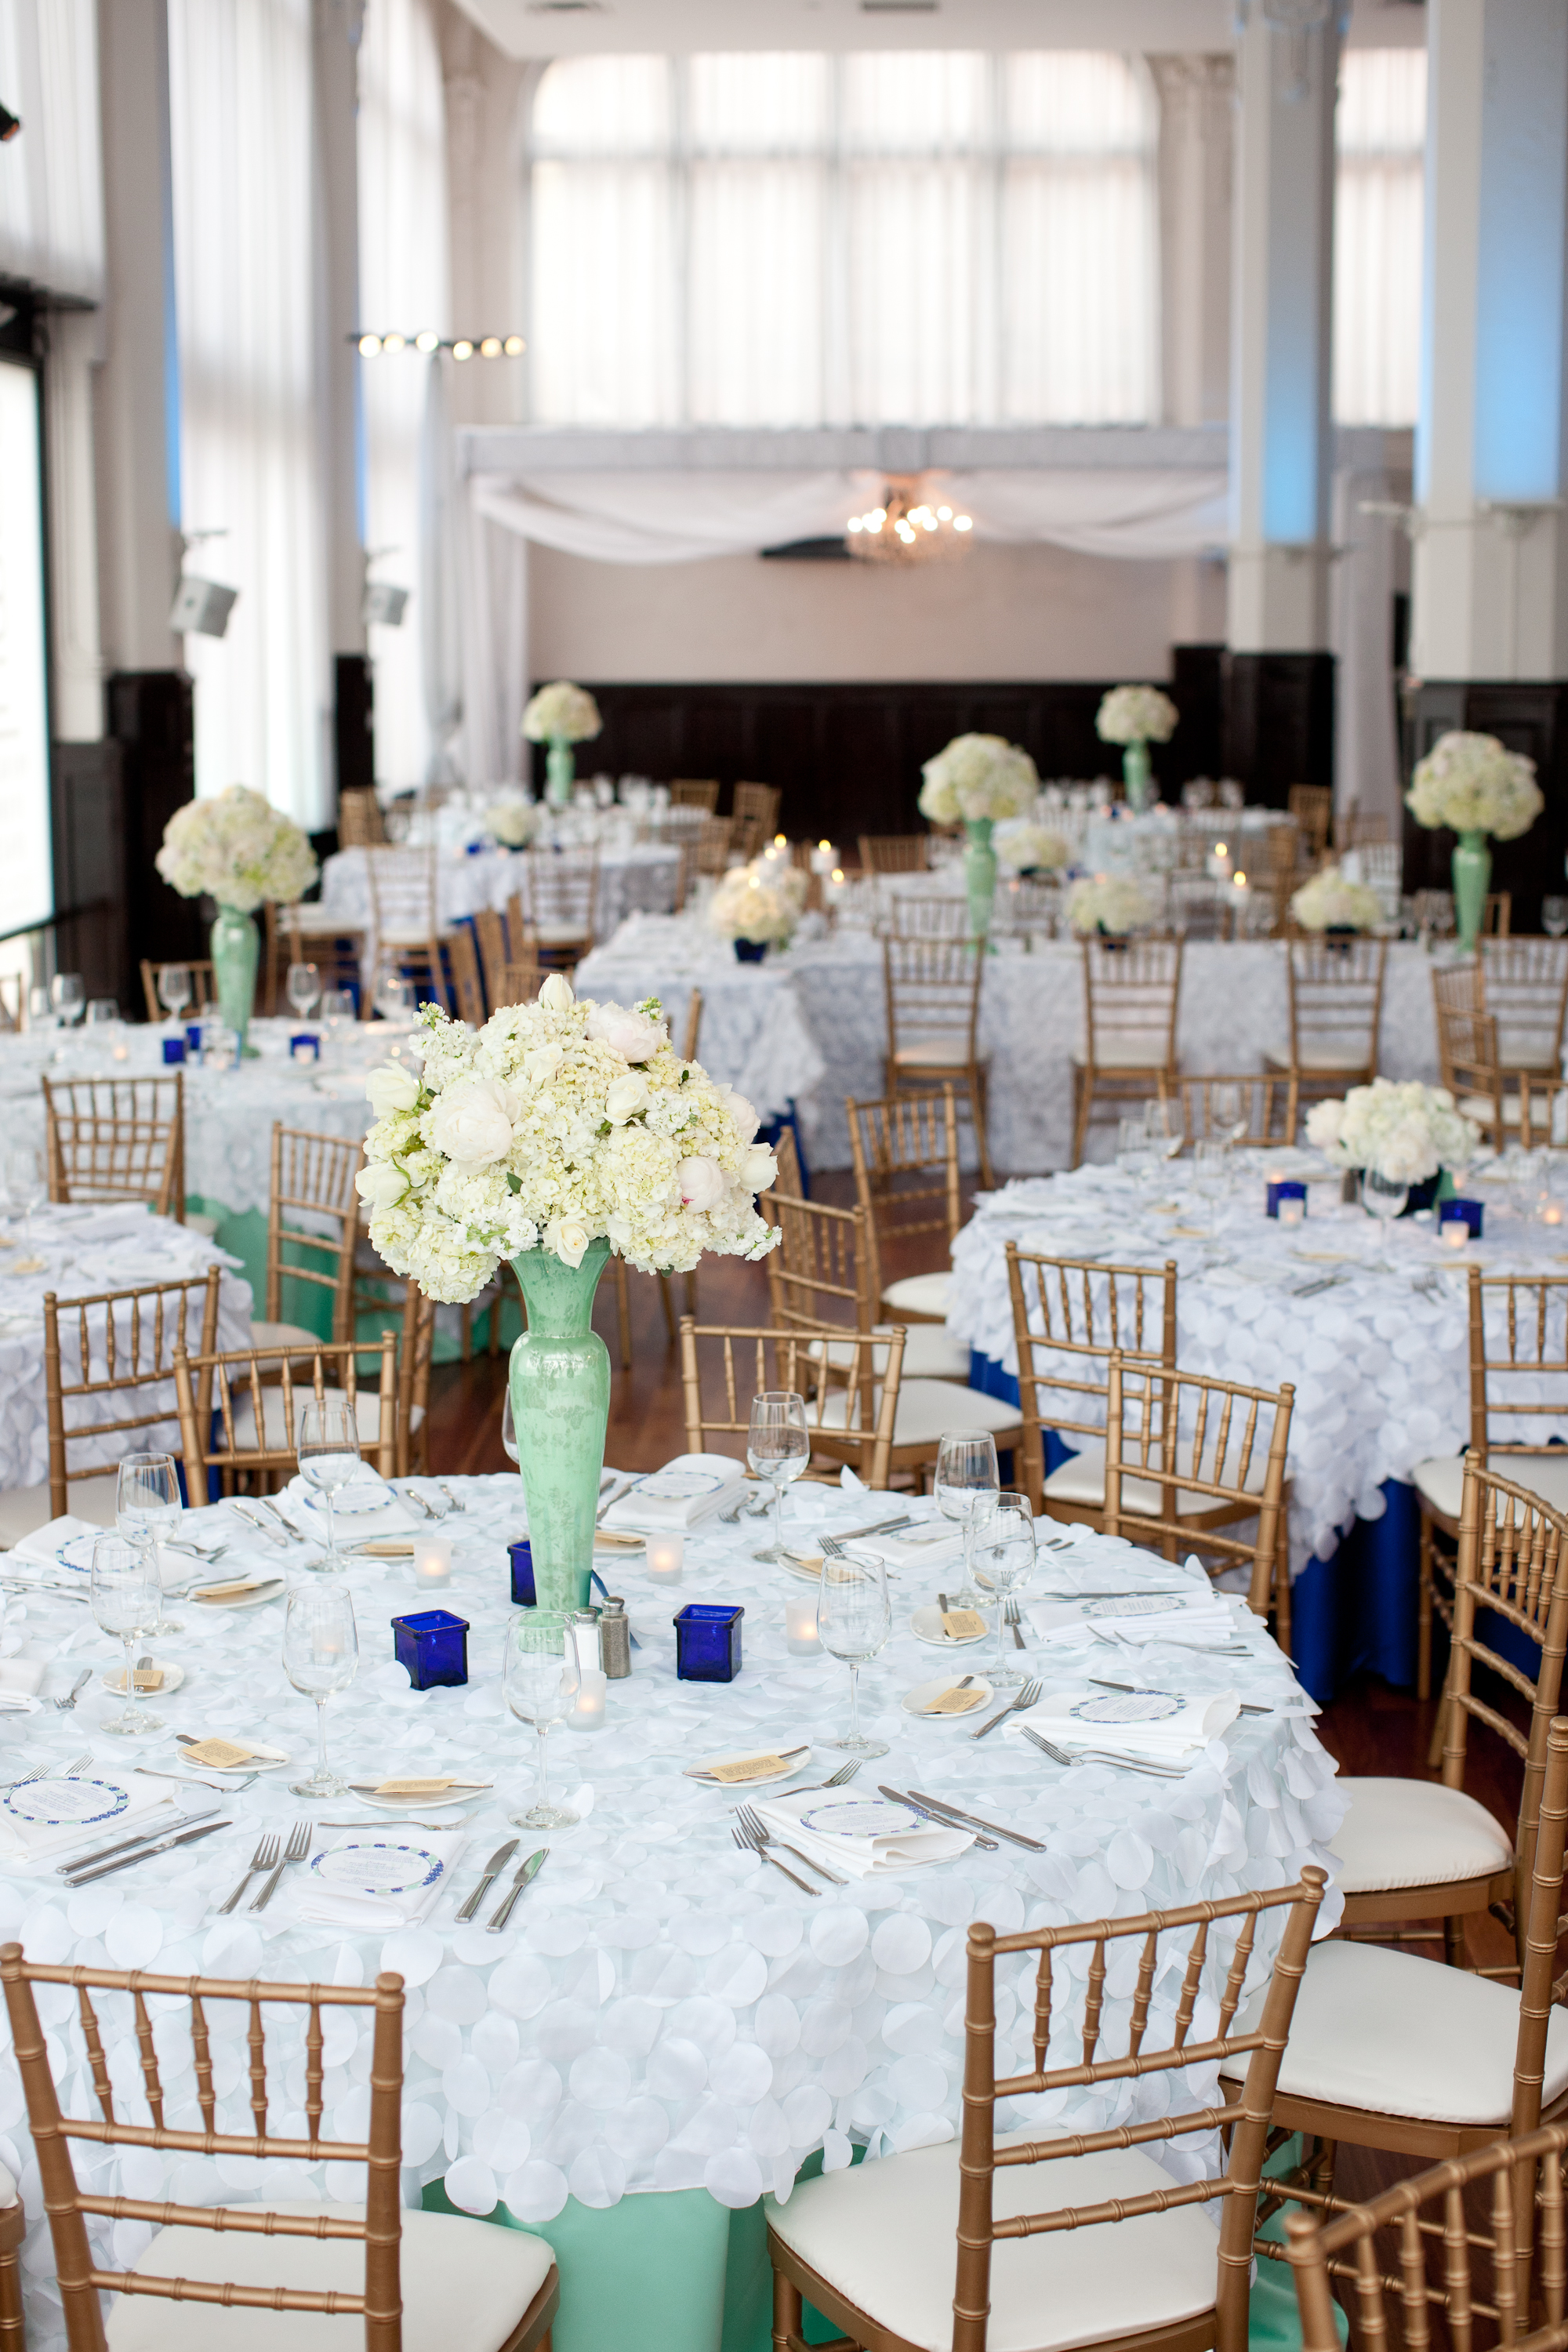 Seafoam Green Home Decor Amy Marshall Seafoam And Cobalt Wedding Events Luxe